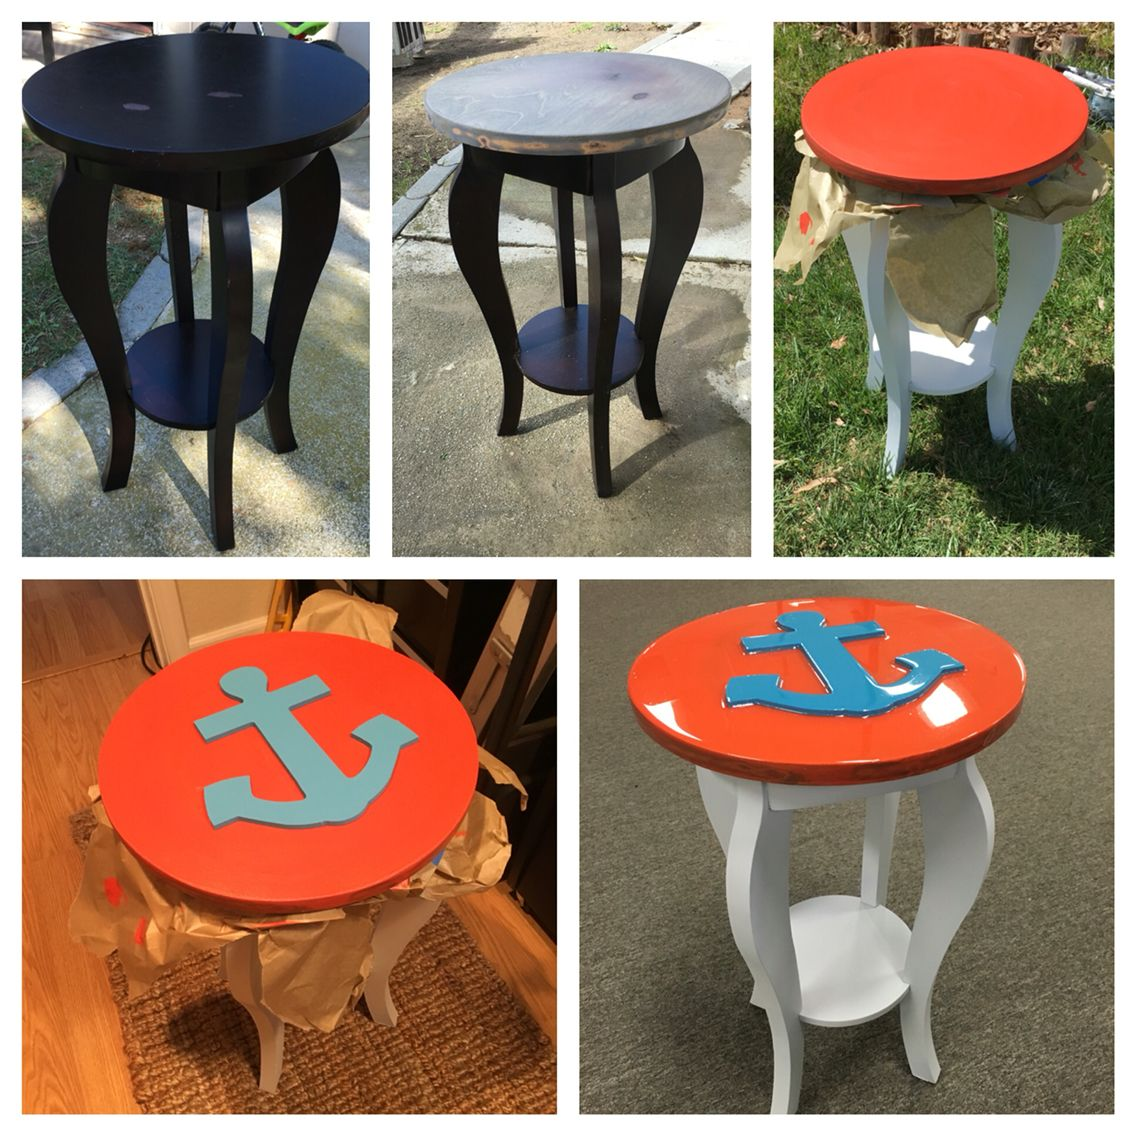 Espresso Side Table Turned Into An Anchor Table With Decoupage.